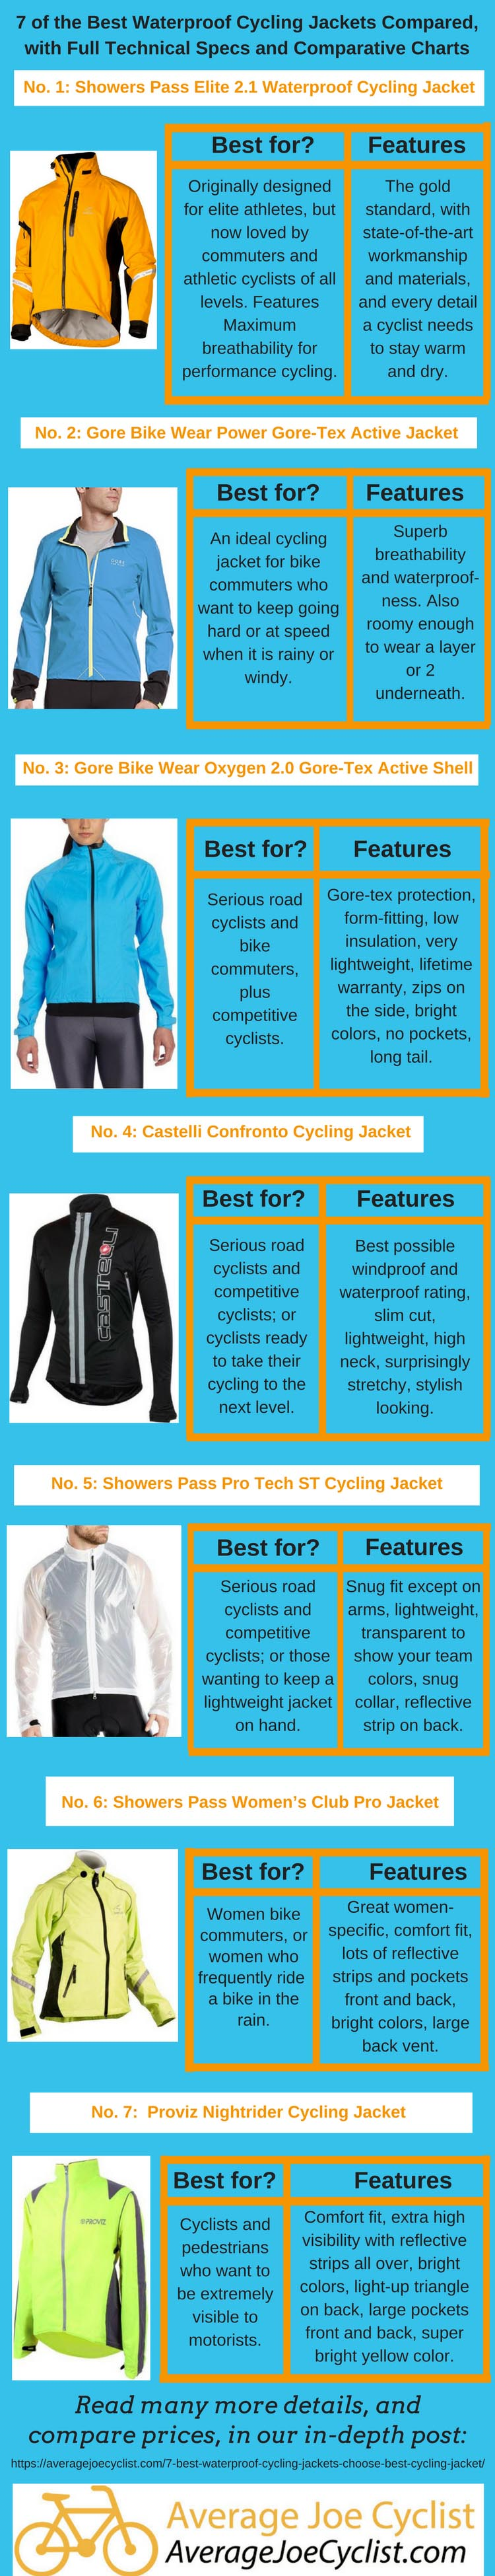 4a20dd522 7 of the best waterproof cycling jackets